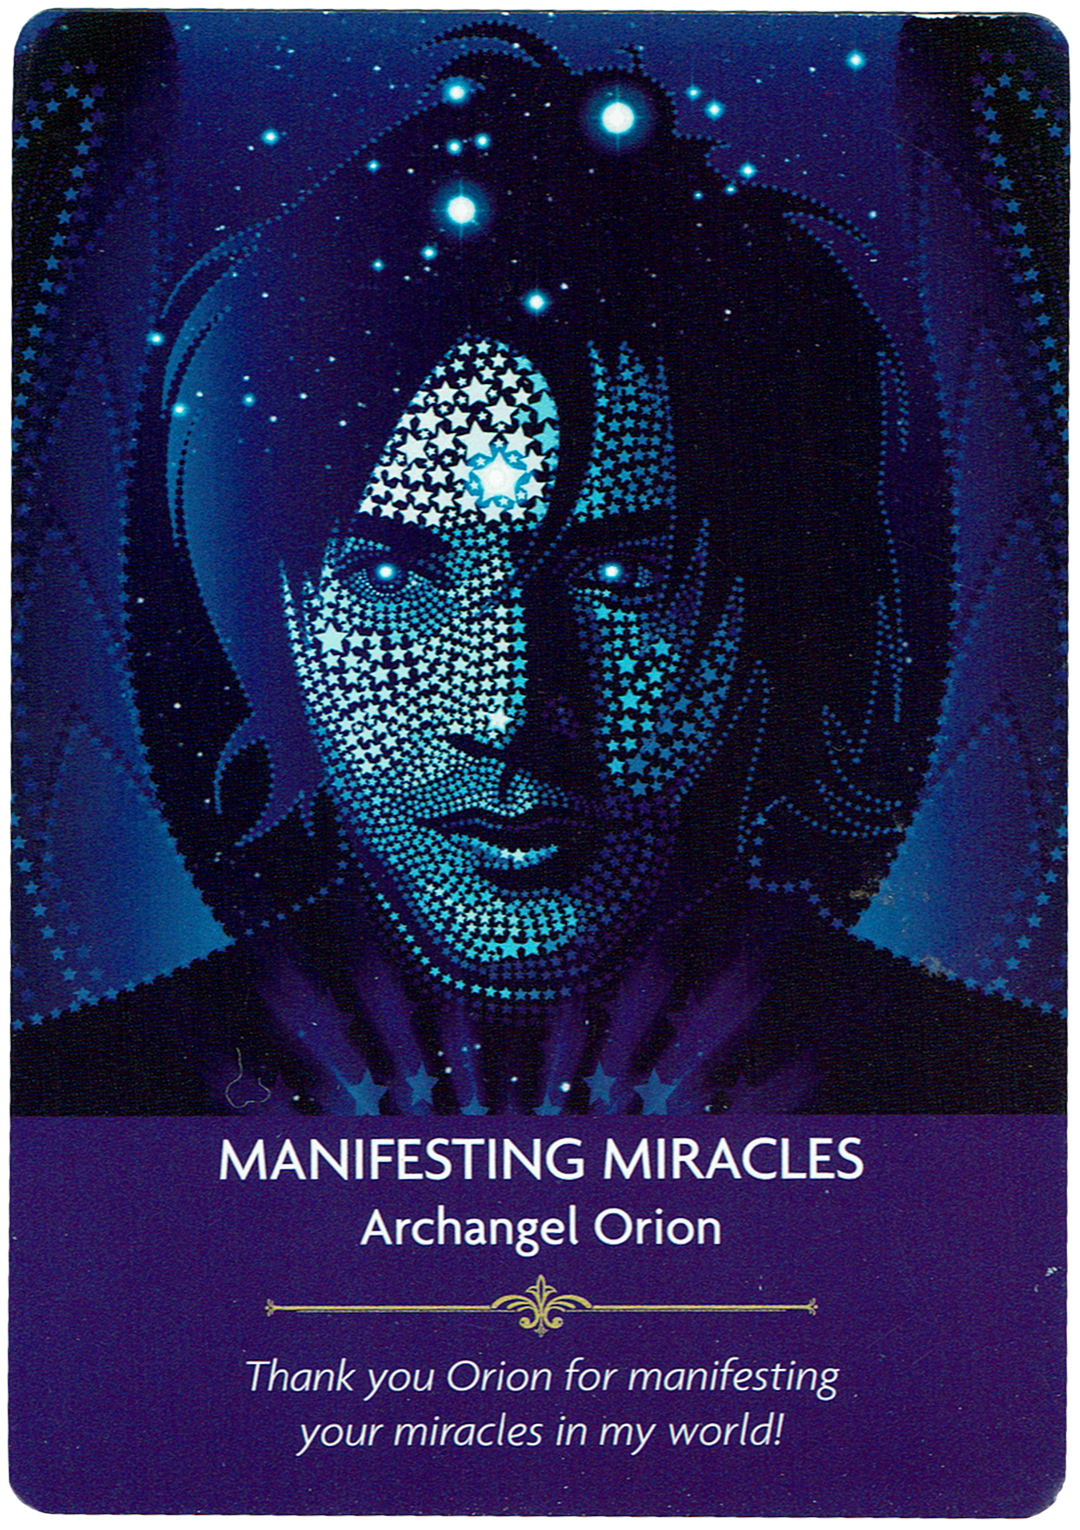 Manifesting Miracles - Archangel Orion